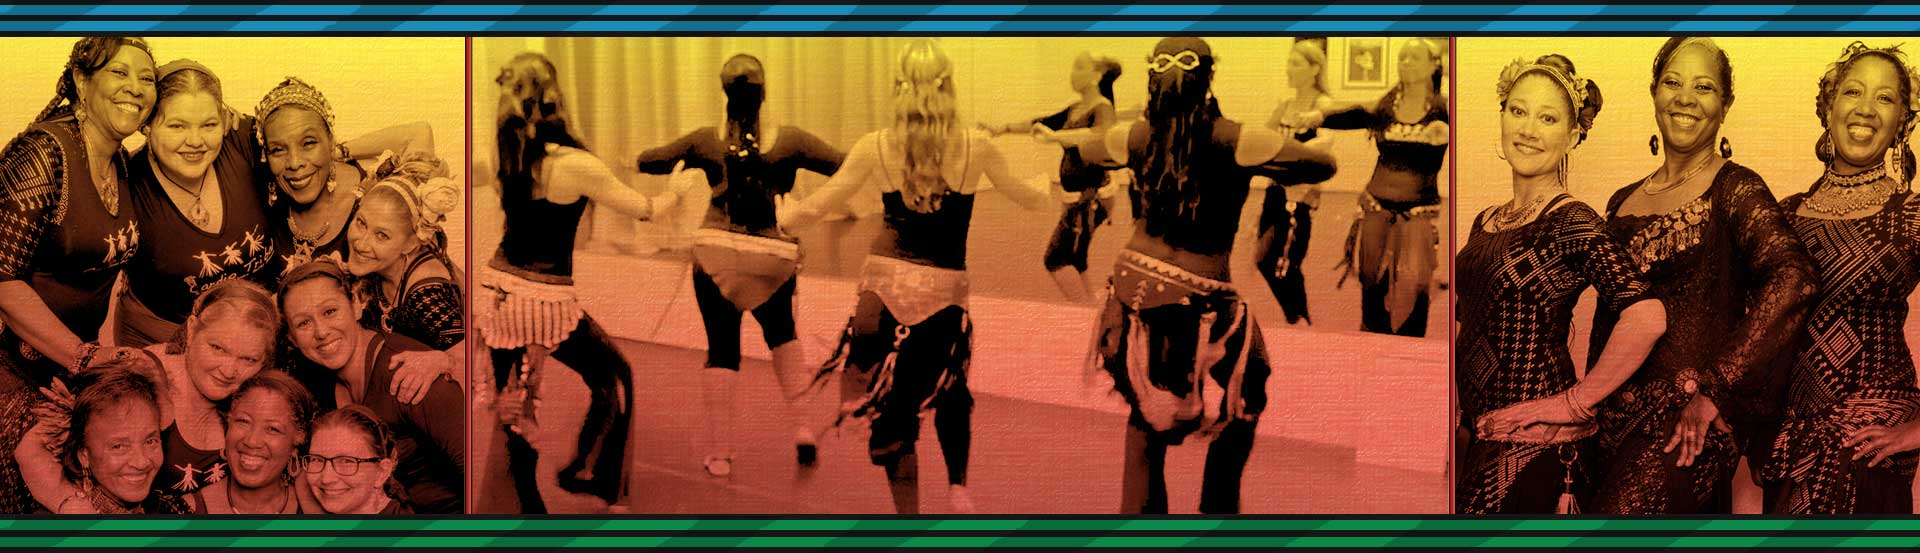 Cardio Tribal Style Belly Dance with Robin Johnson | Zaltana Transcultural Fusion Dancers